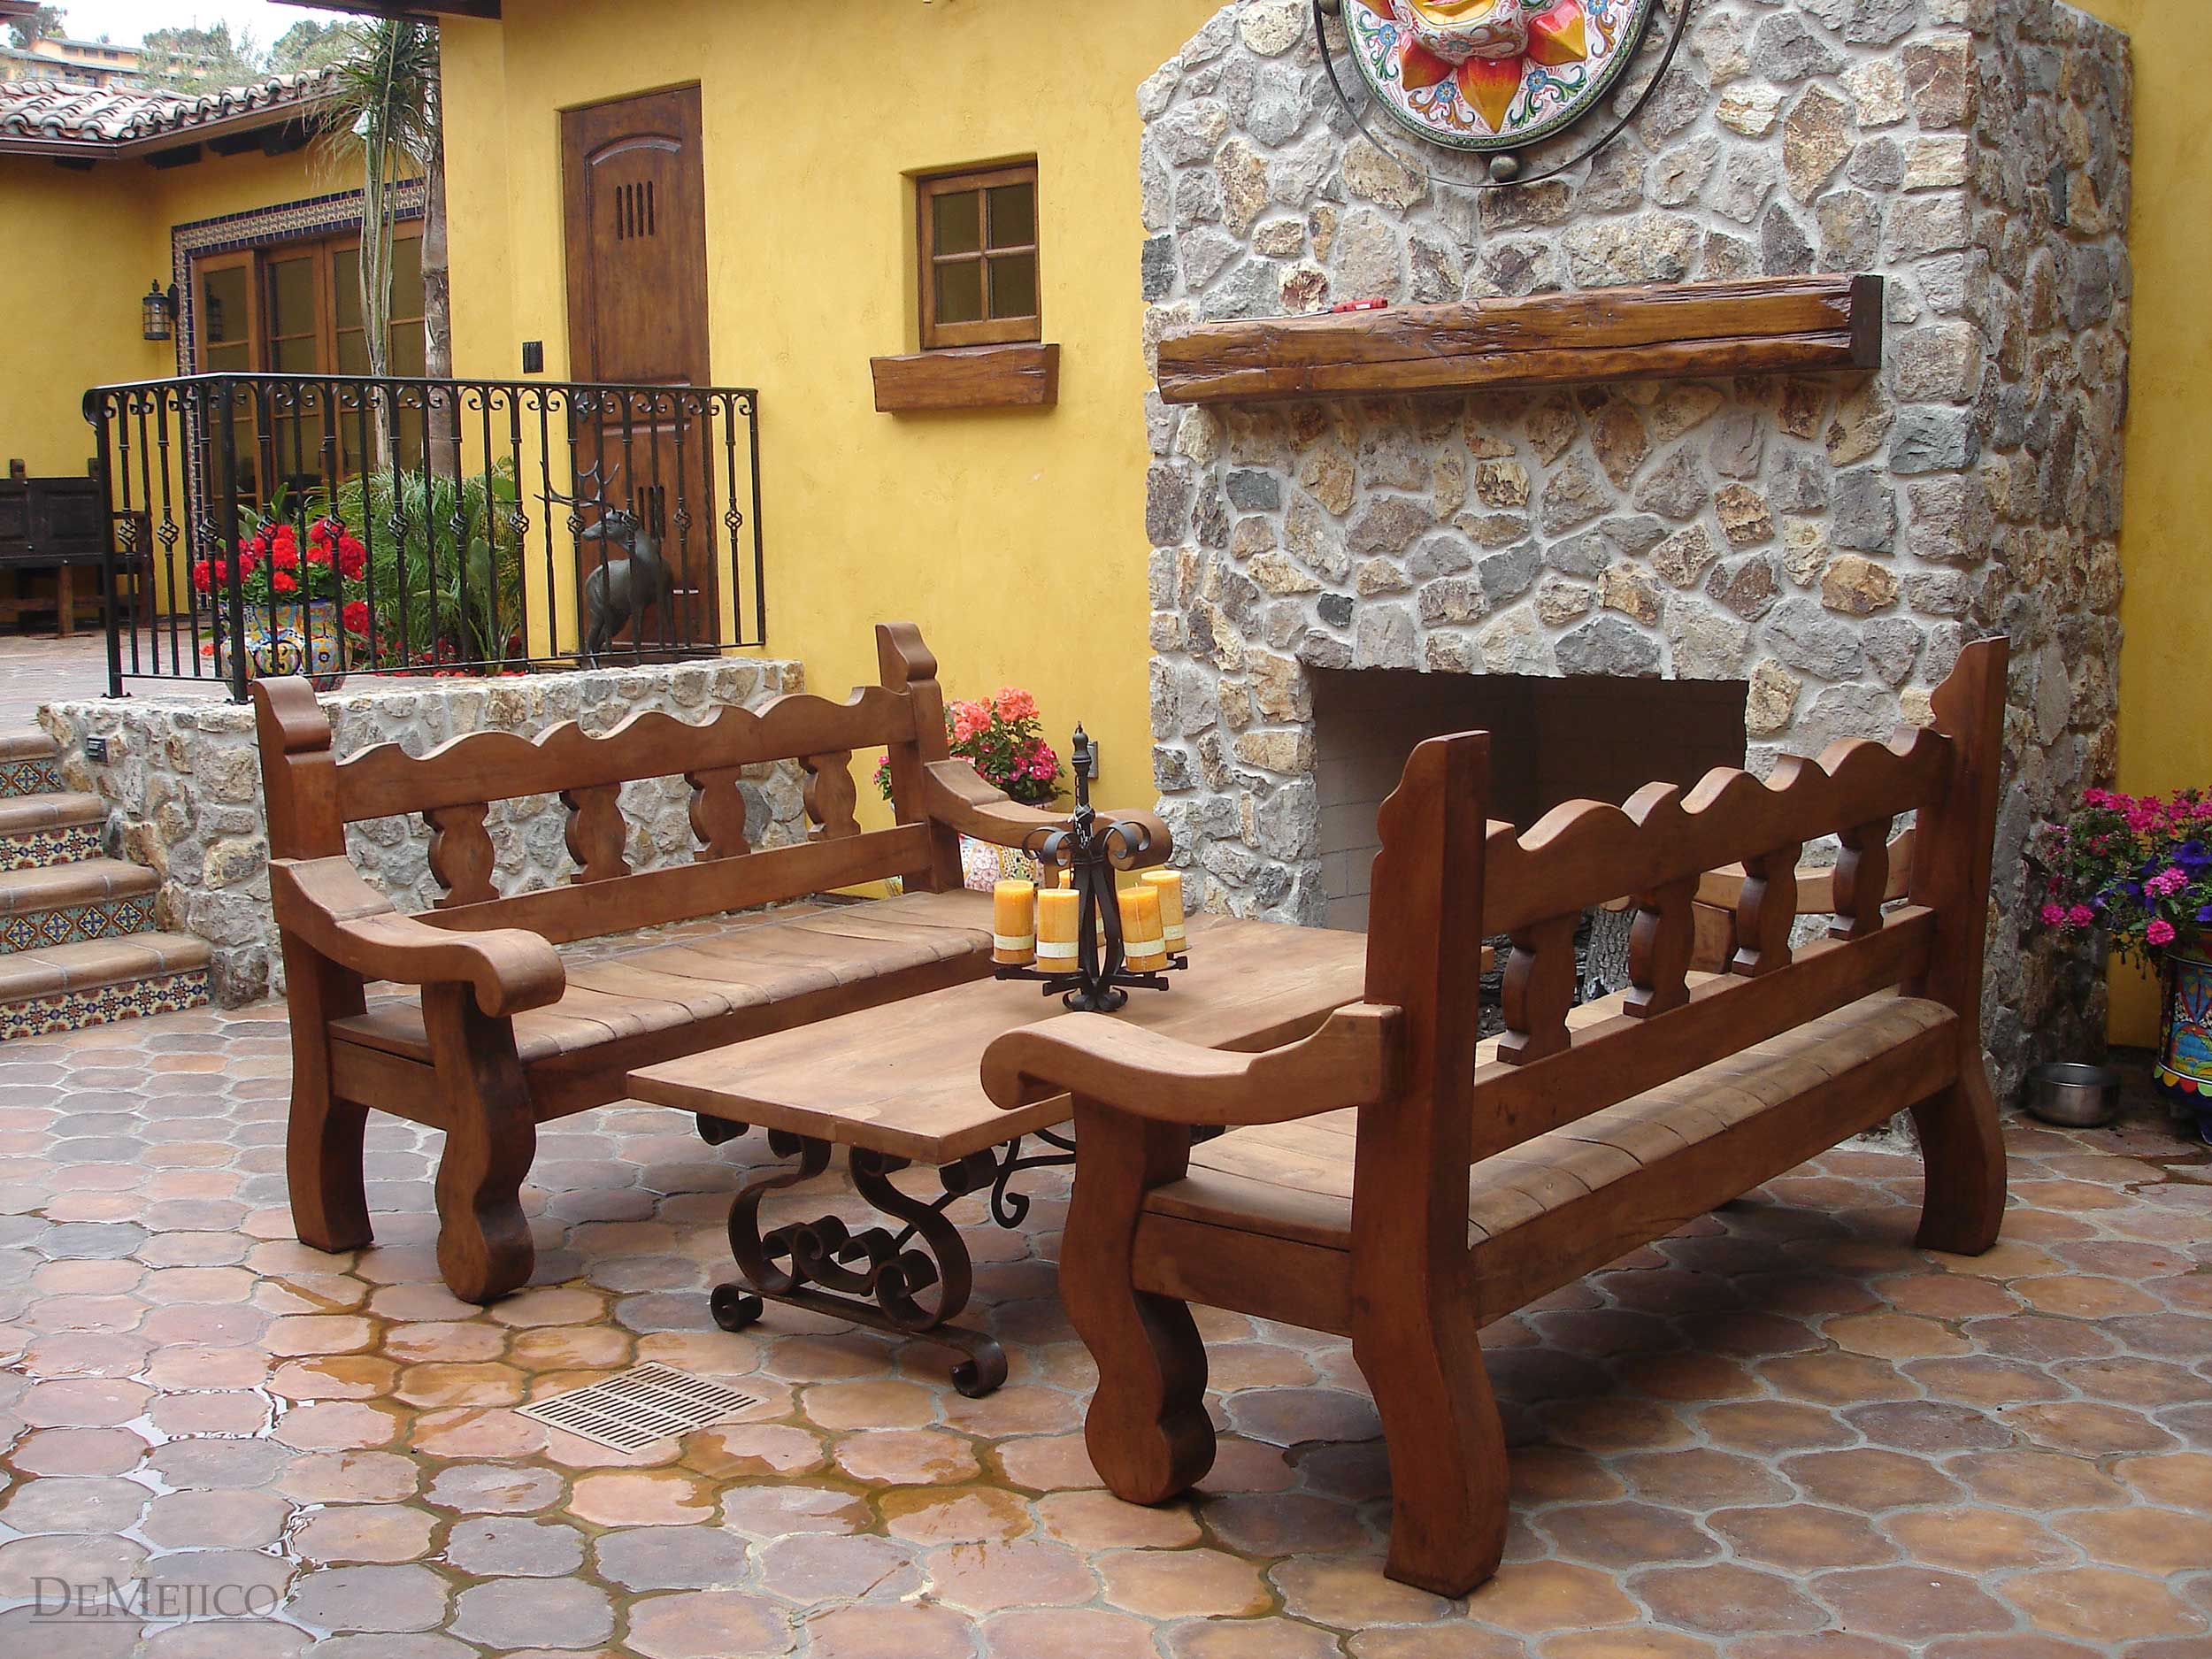 Arte De Mexico Beds Spanish Furniture Spanish Outdoor Furniture Demejico